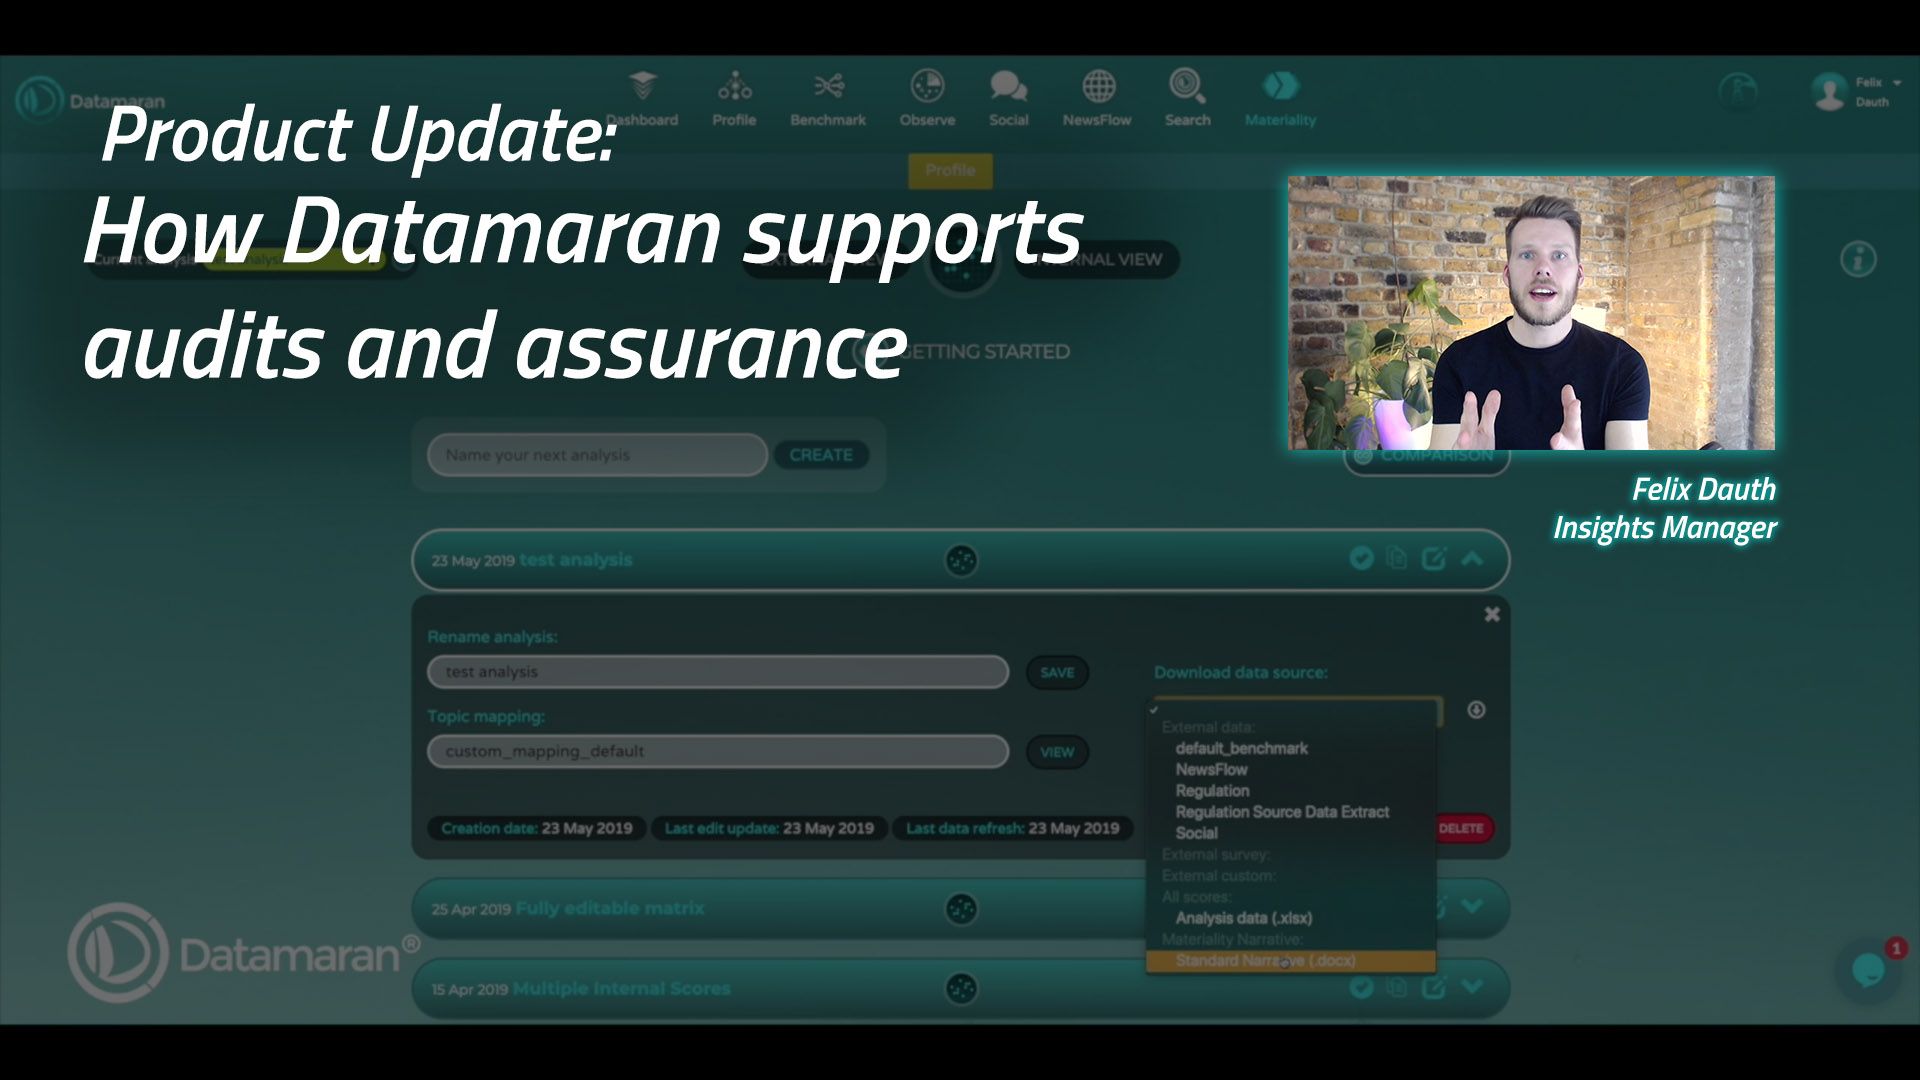 How Datamaran supports audits and assurance